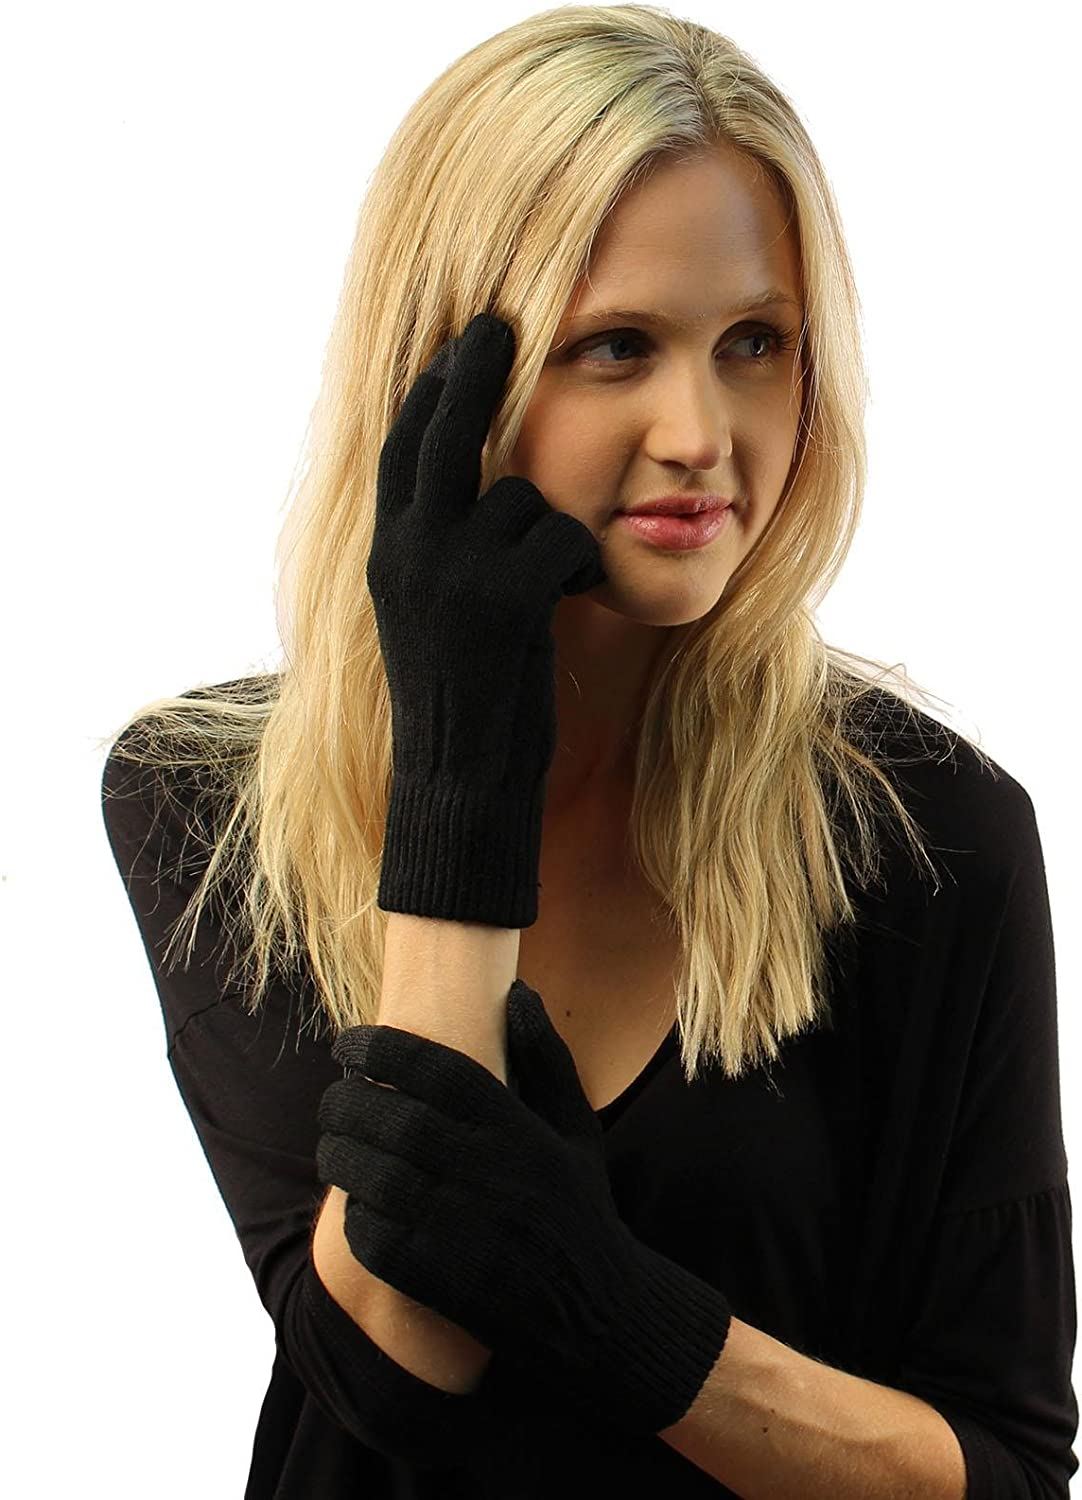 Winter Ladies Everyday Smart Tip Smart Phone Touch screen Tech Gloves S/M